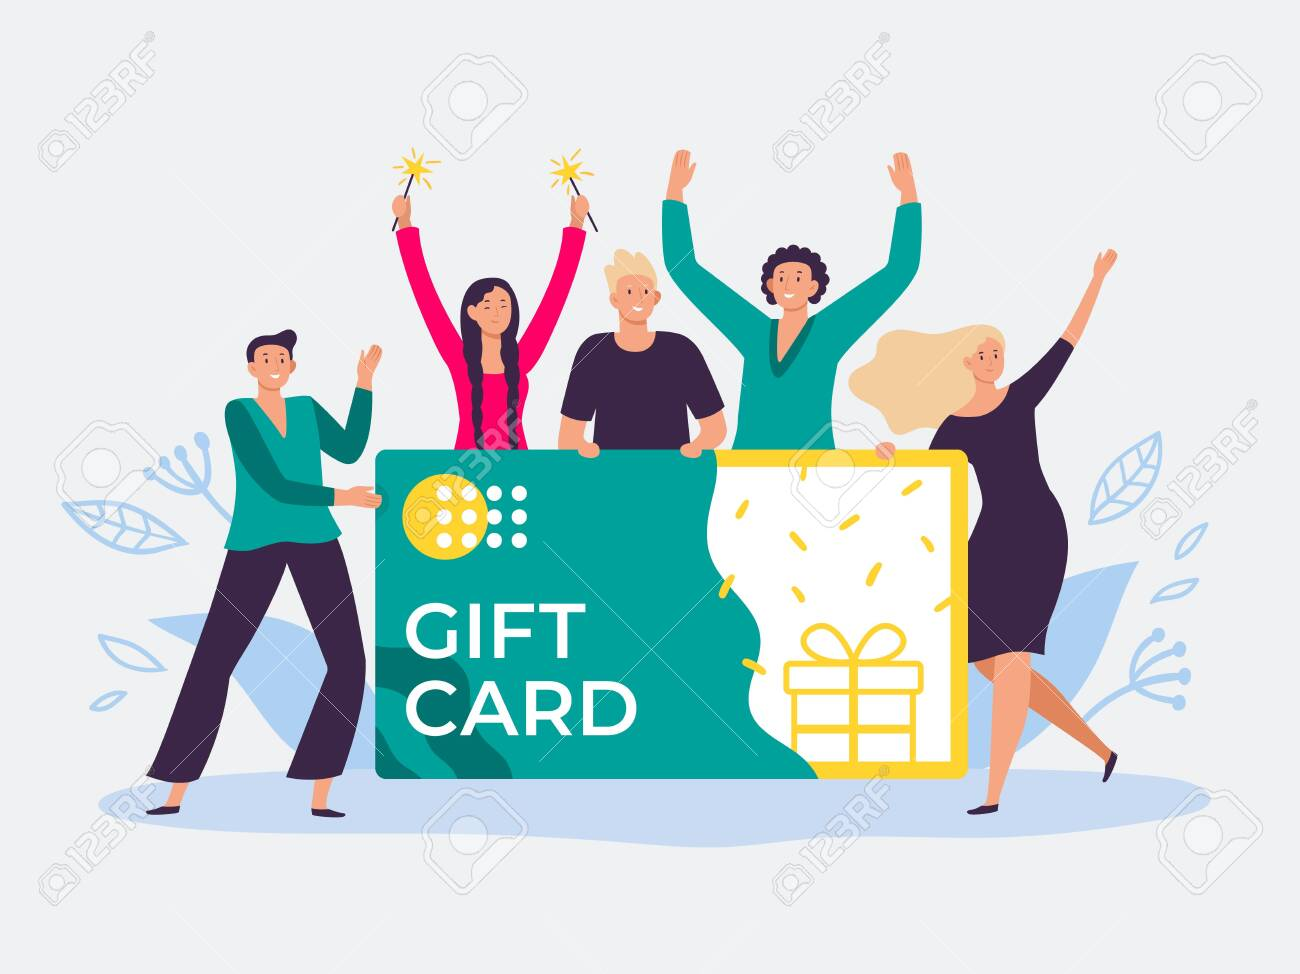 Gift card voucher. Gift certificate, discount cards for customers and happy people hold gift coupon. Shopping voucher prize winning flat vector illustration - 133814079